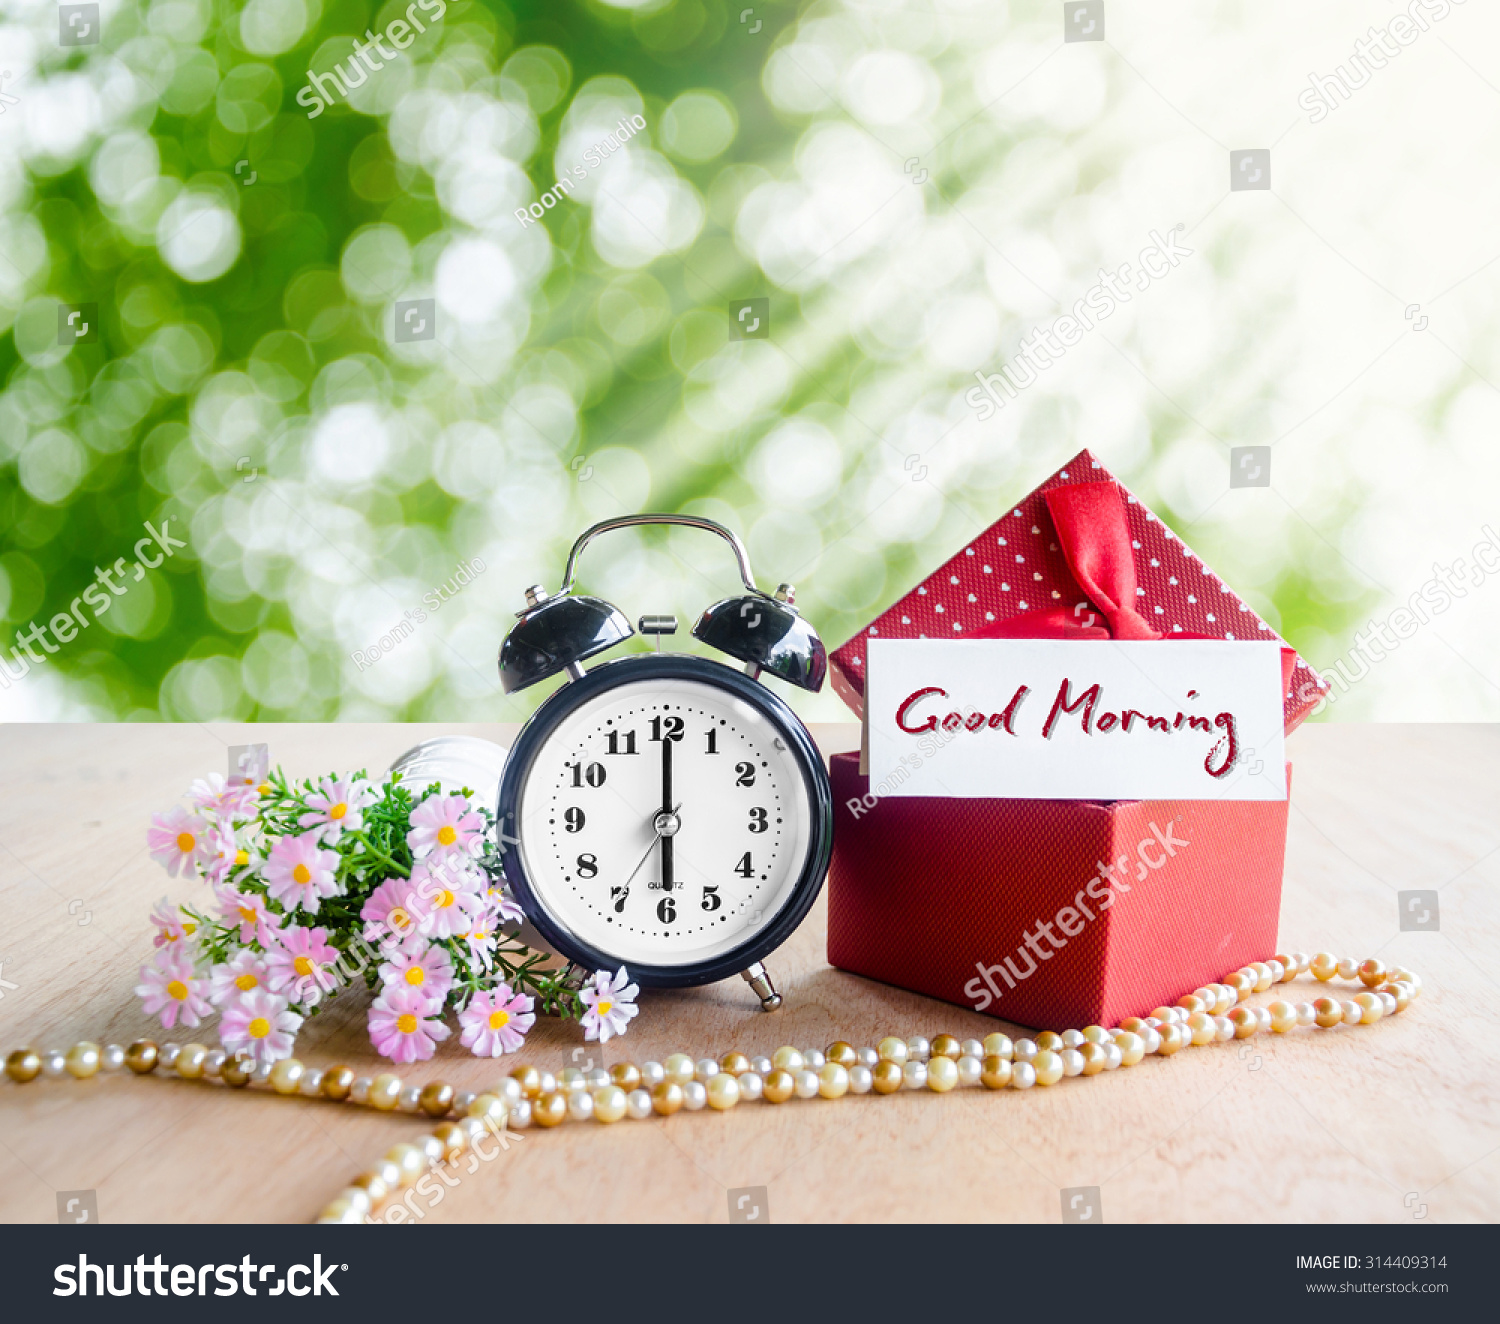 Good morning tag alarm clock gift stock photo royalty free good morning tag and alarm clock with gift box on spring background negle Choice Image